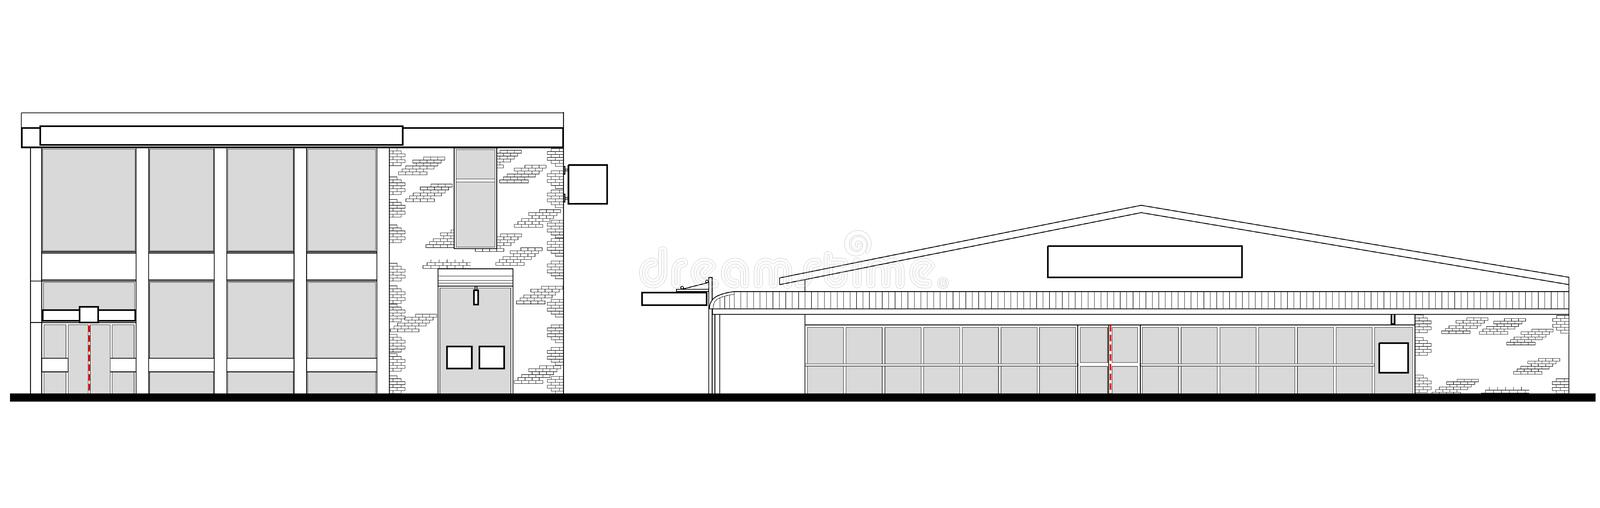 Mall shopping center building. Line drawing illustration of a strip mall or shopping center building viewed from front elevation on white background